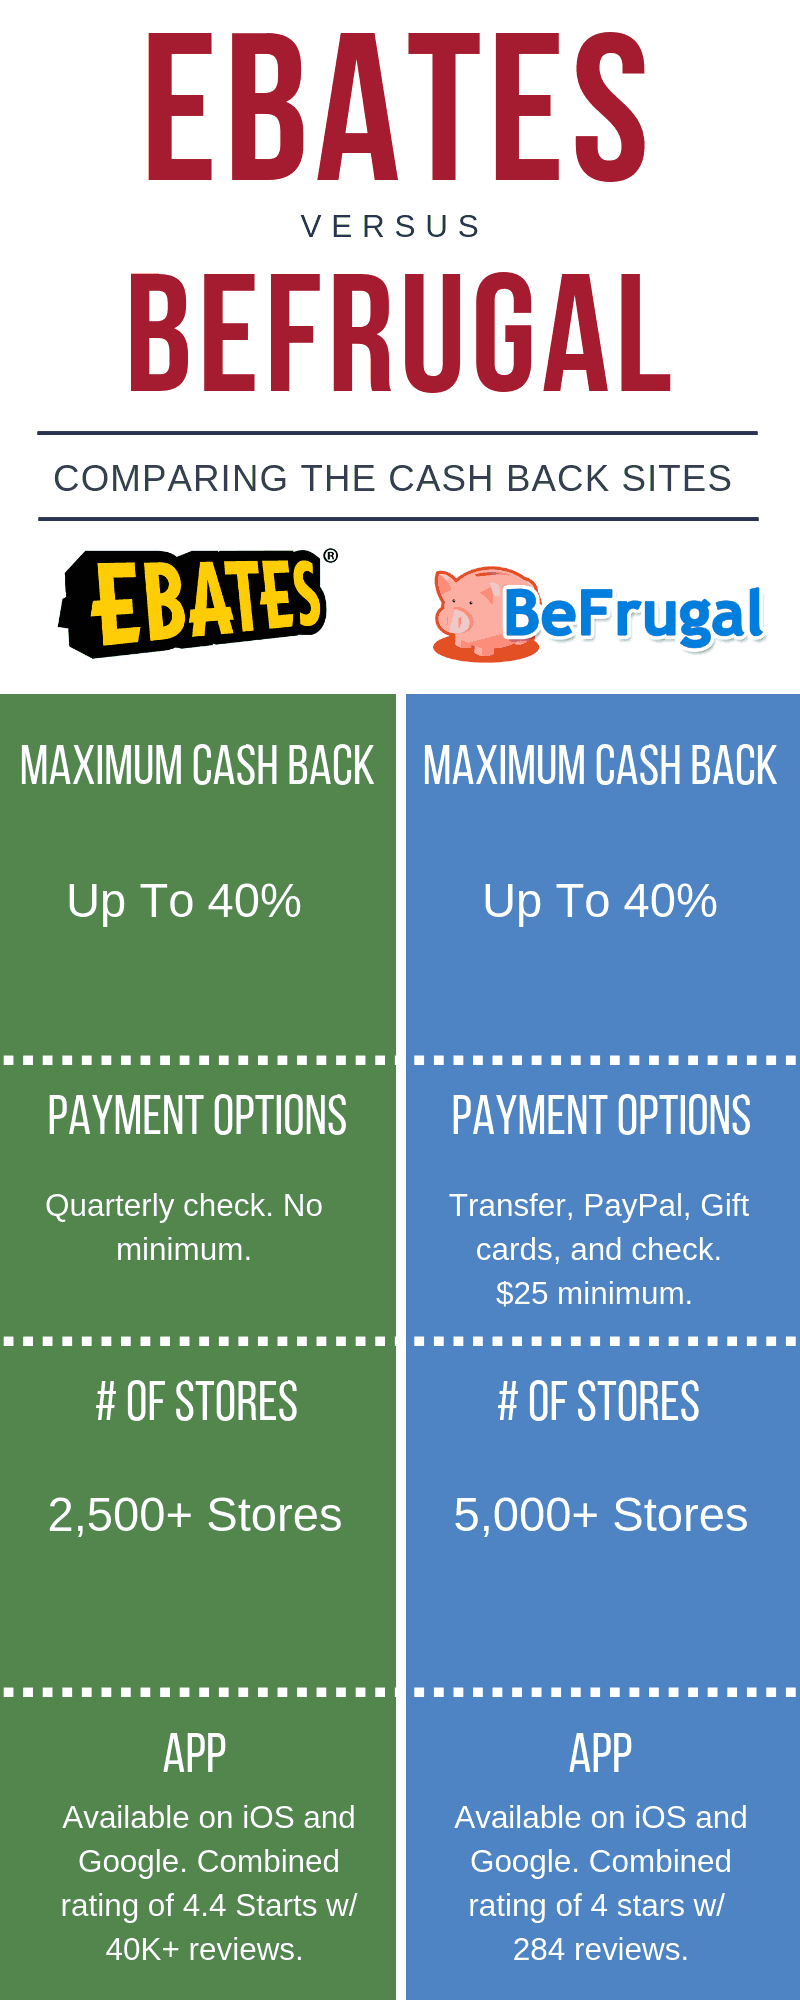 BeFrugal vs. Ebates: Which One Is Best? BeFrugal Review | How To Use | BeFrugal Tips #thewaystowealth #shopping #cashback